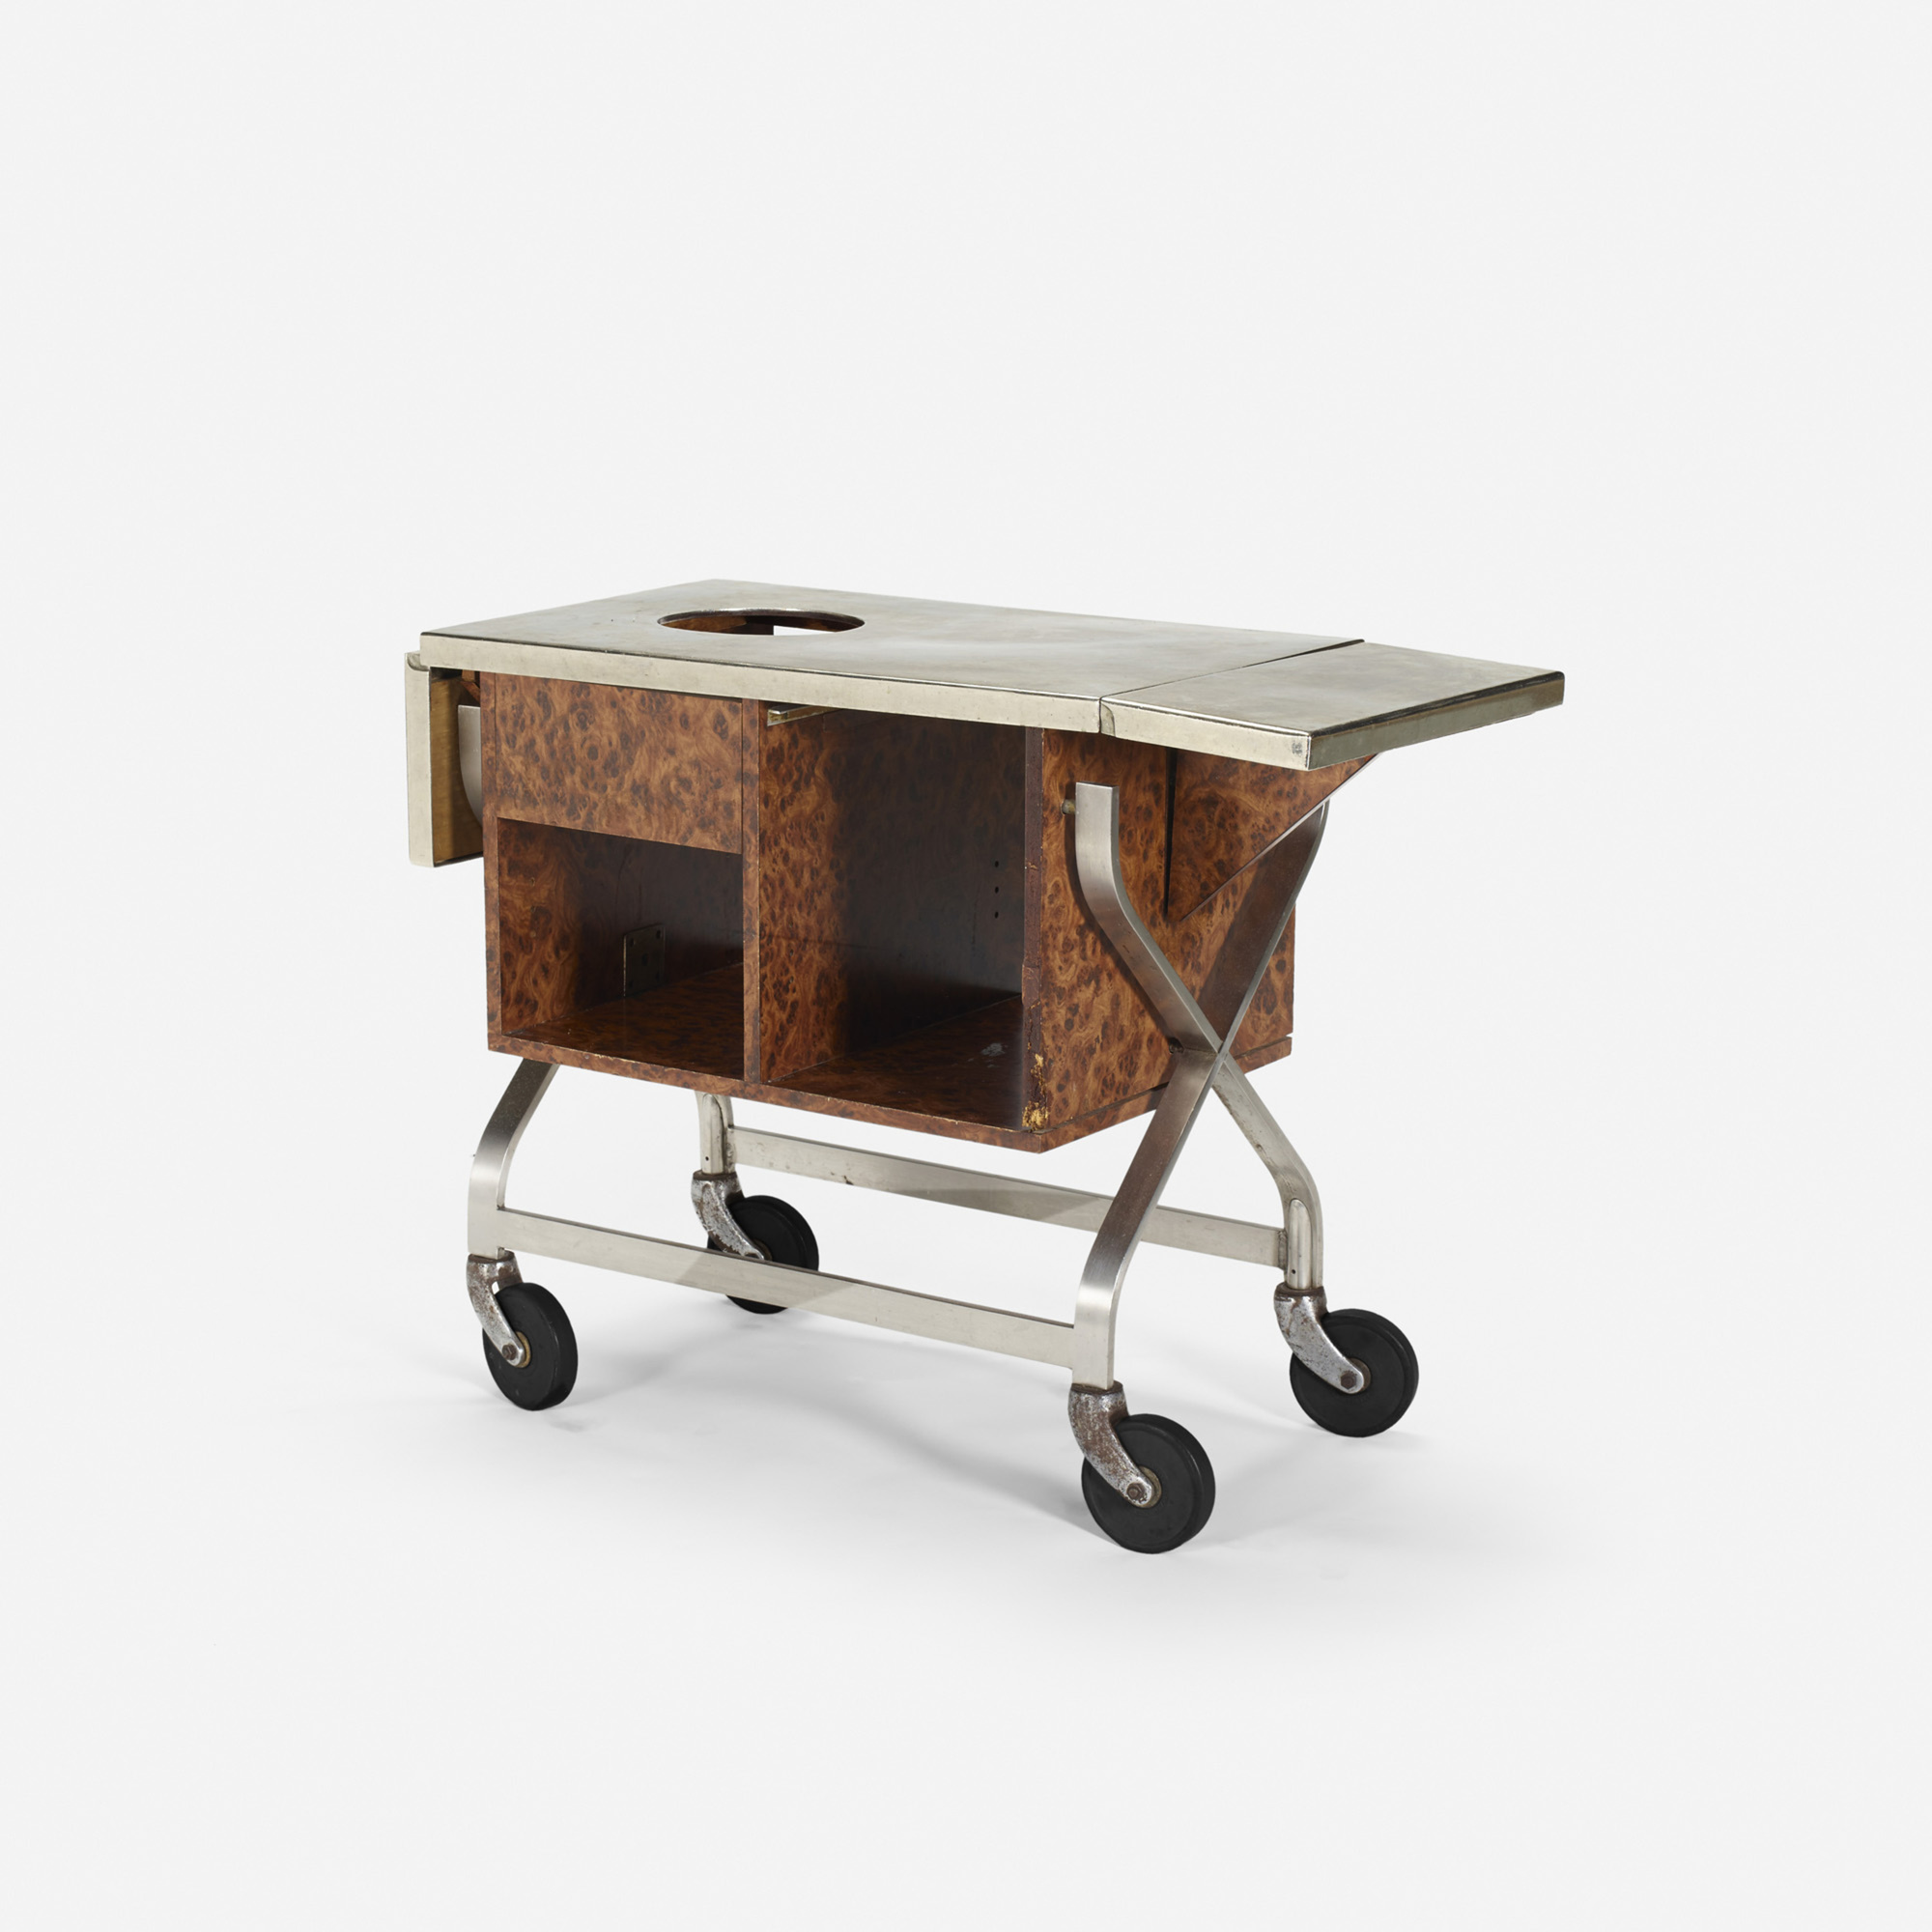 329: Garth and Ada Louise Huxtable / Serving cart from The Four Seasons (1 of 1)